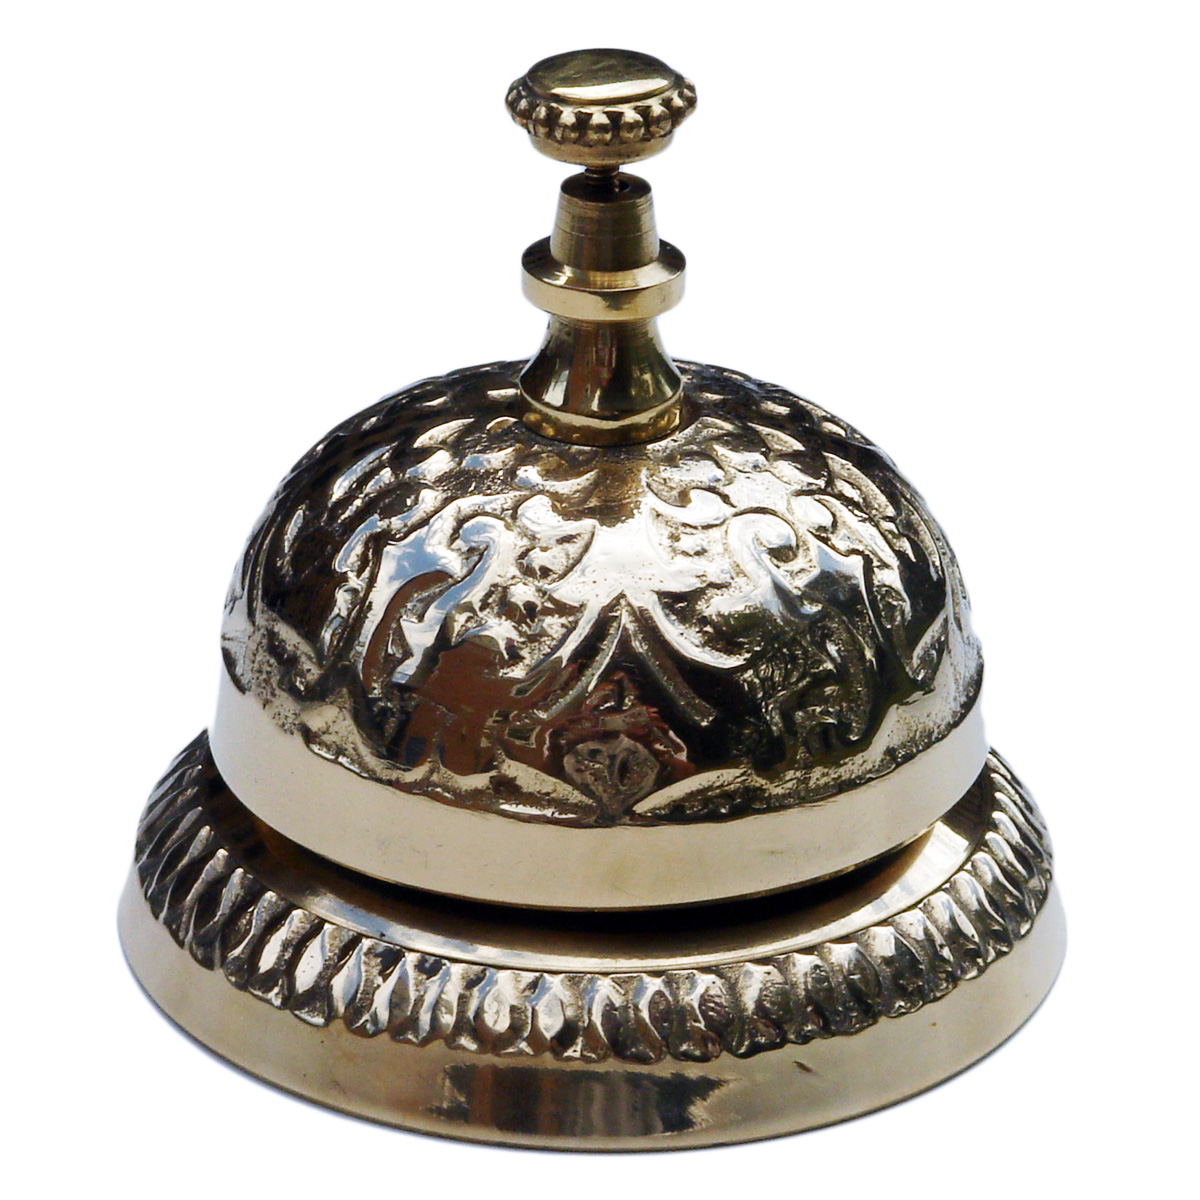 NEW Antique Look Brass Bell Desk Victorian Hotel Home Decor Decoration Gift